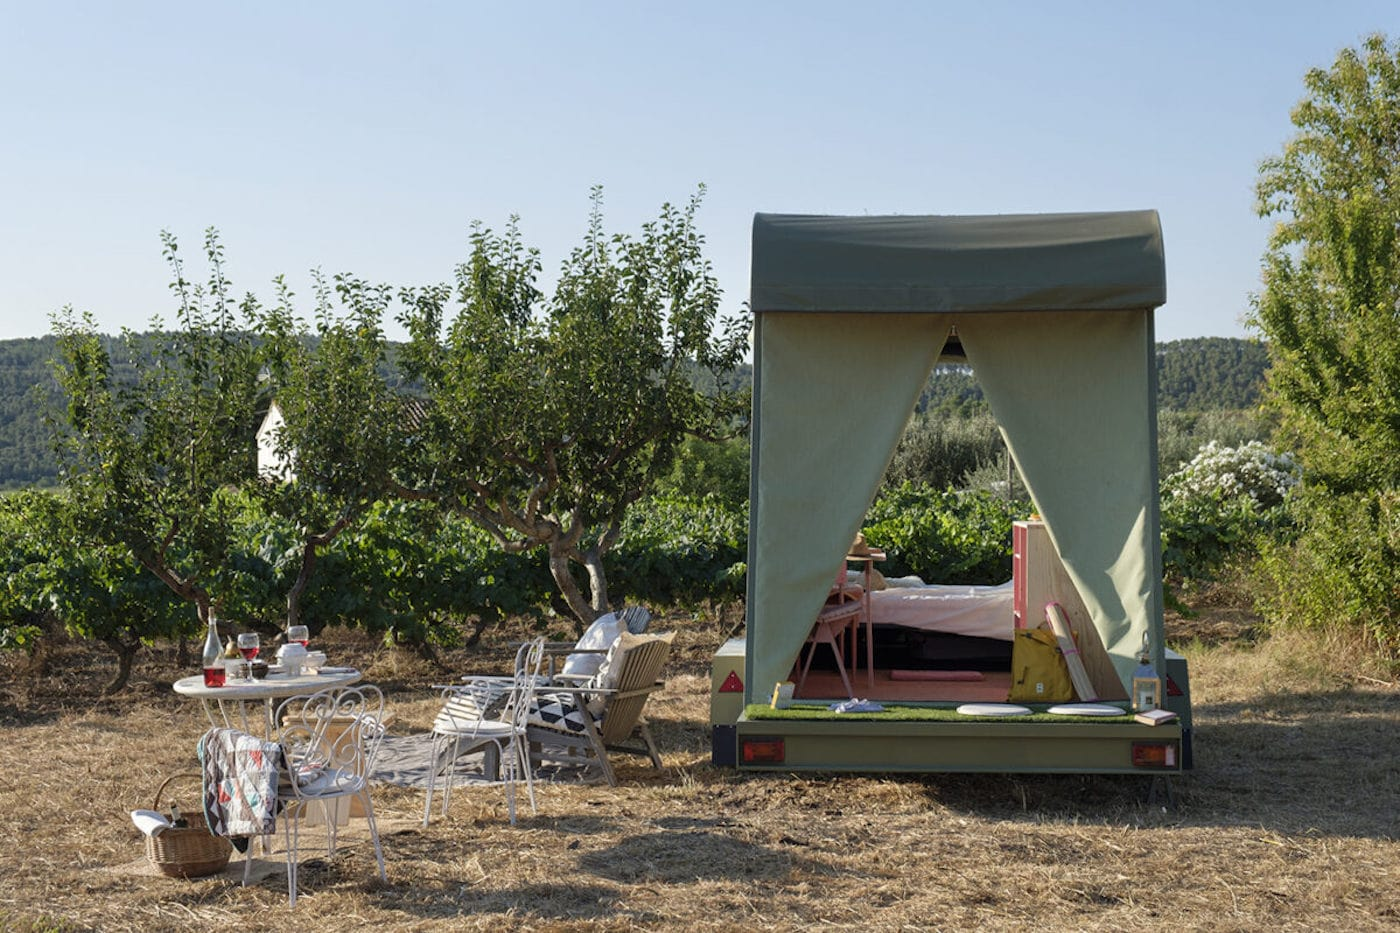 Campervan set up in vineyards with outdoor tables and chairs